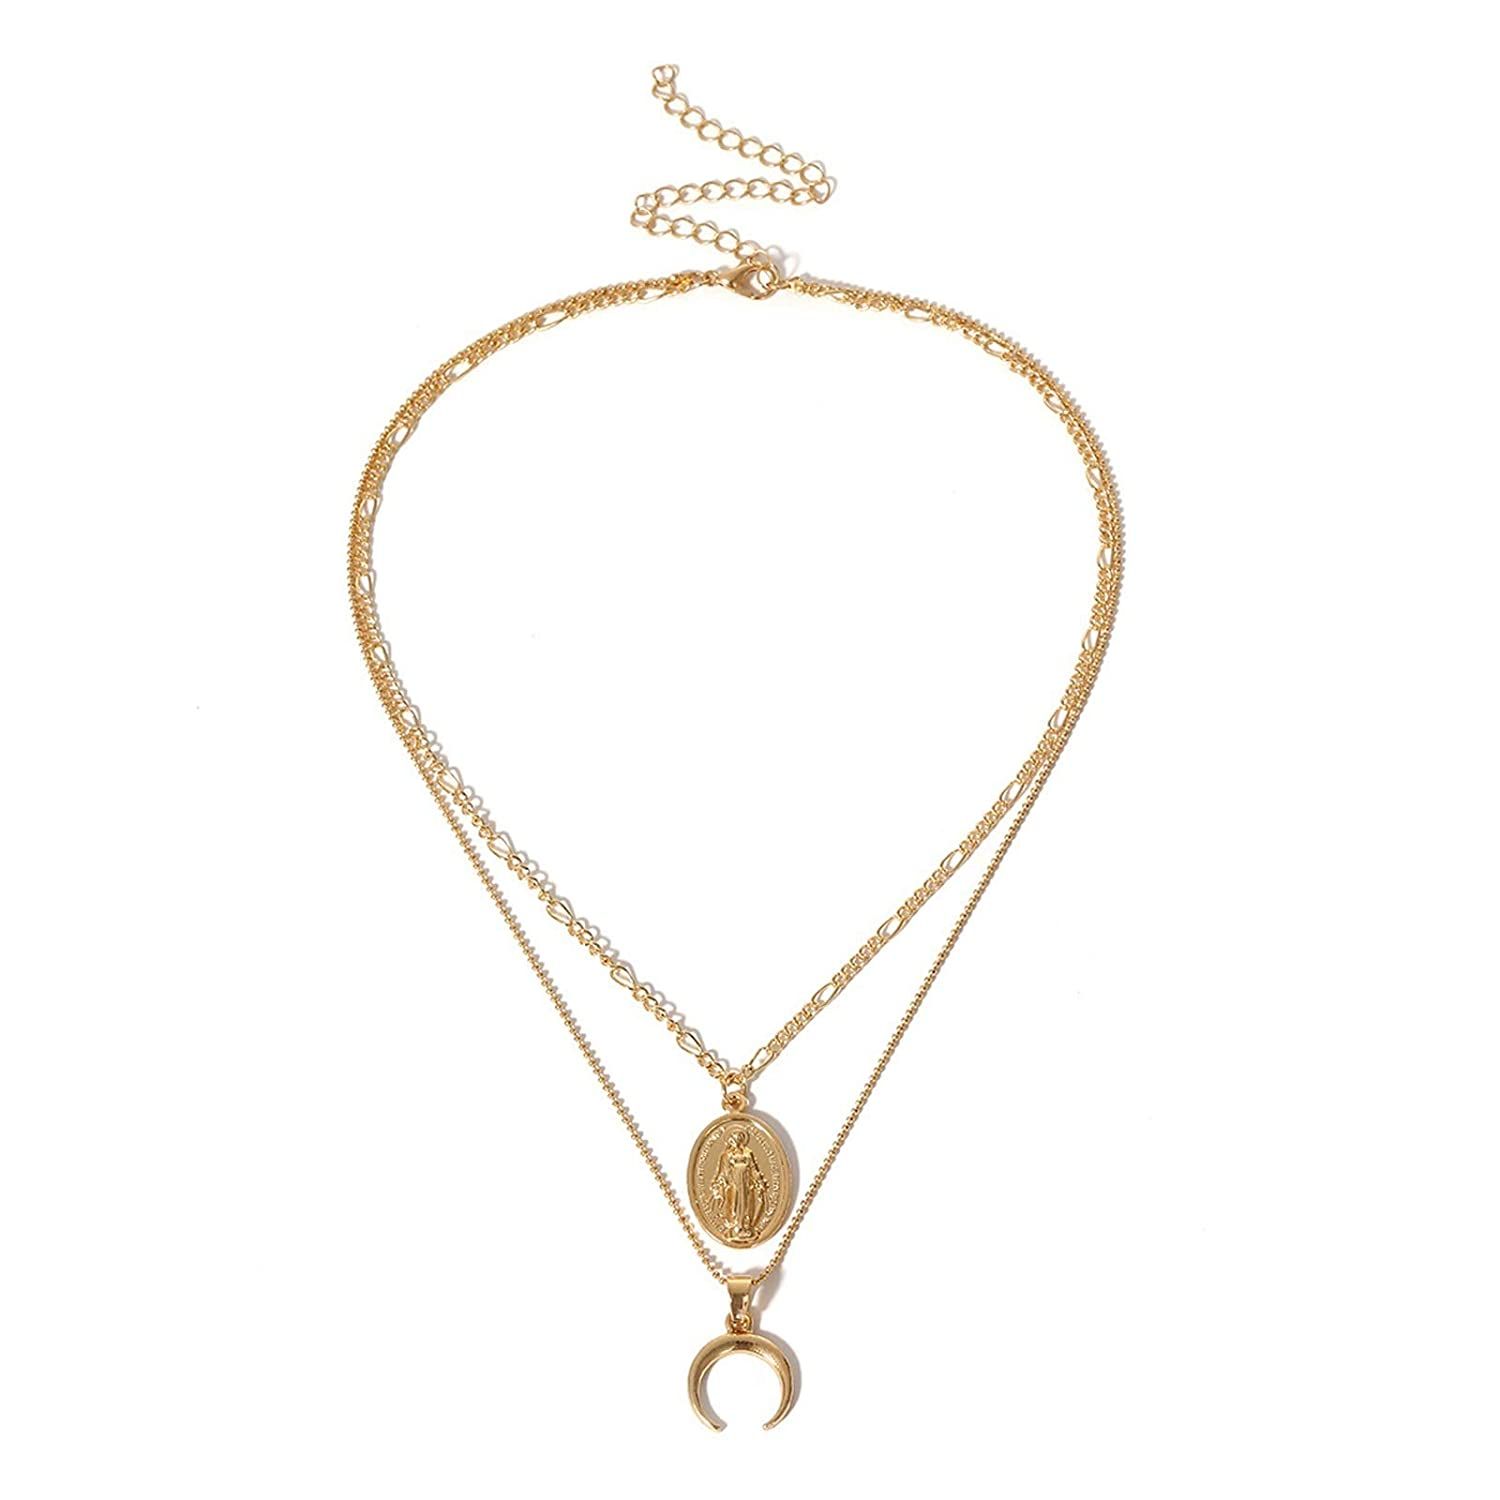 Epinki Gold Plated 2 Layered Necklace Gold Virgin Mary Crescent Chain Necklace Vintage for Women and Girls